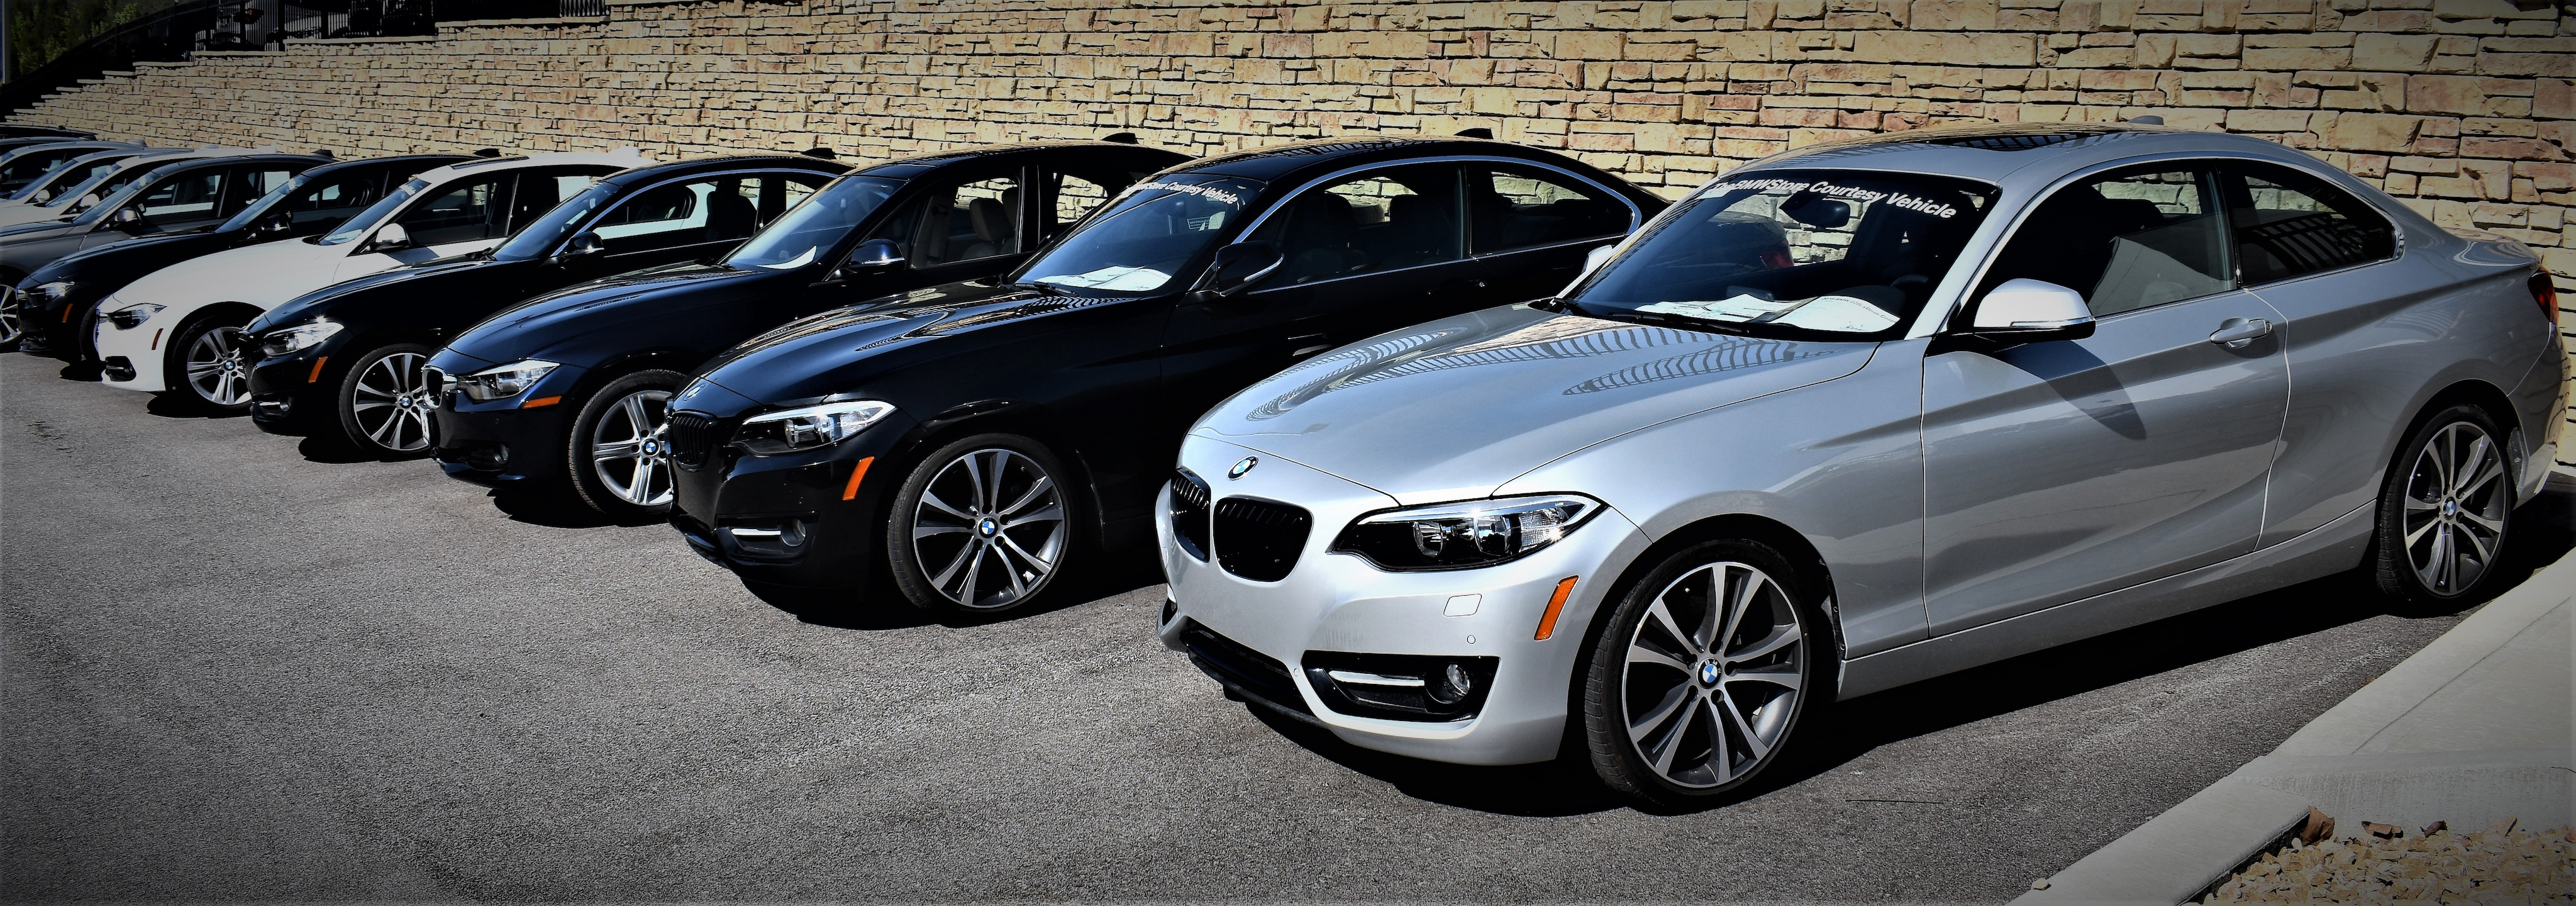 car warranty the sale scranton bmw extended for of pa new best gxc discount